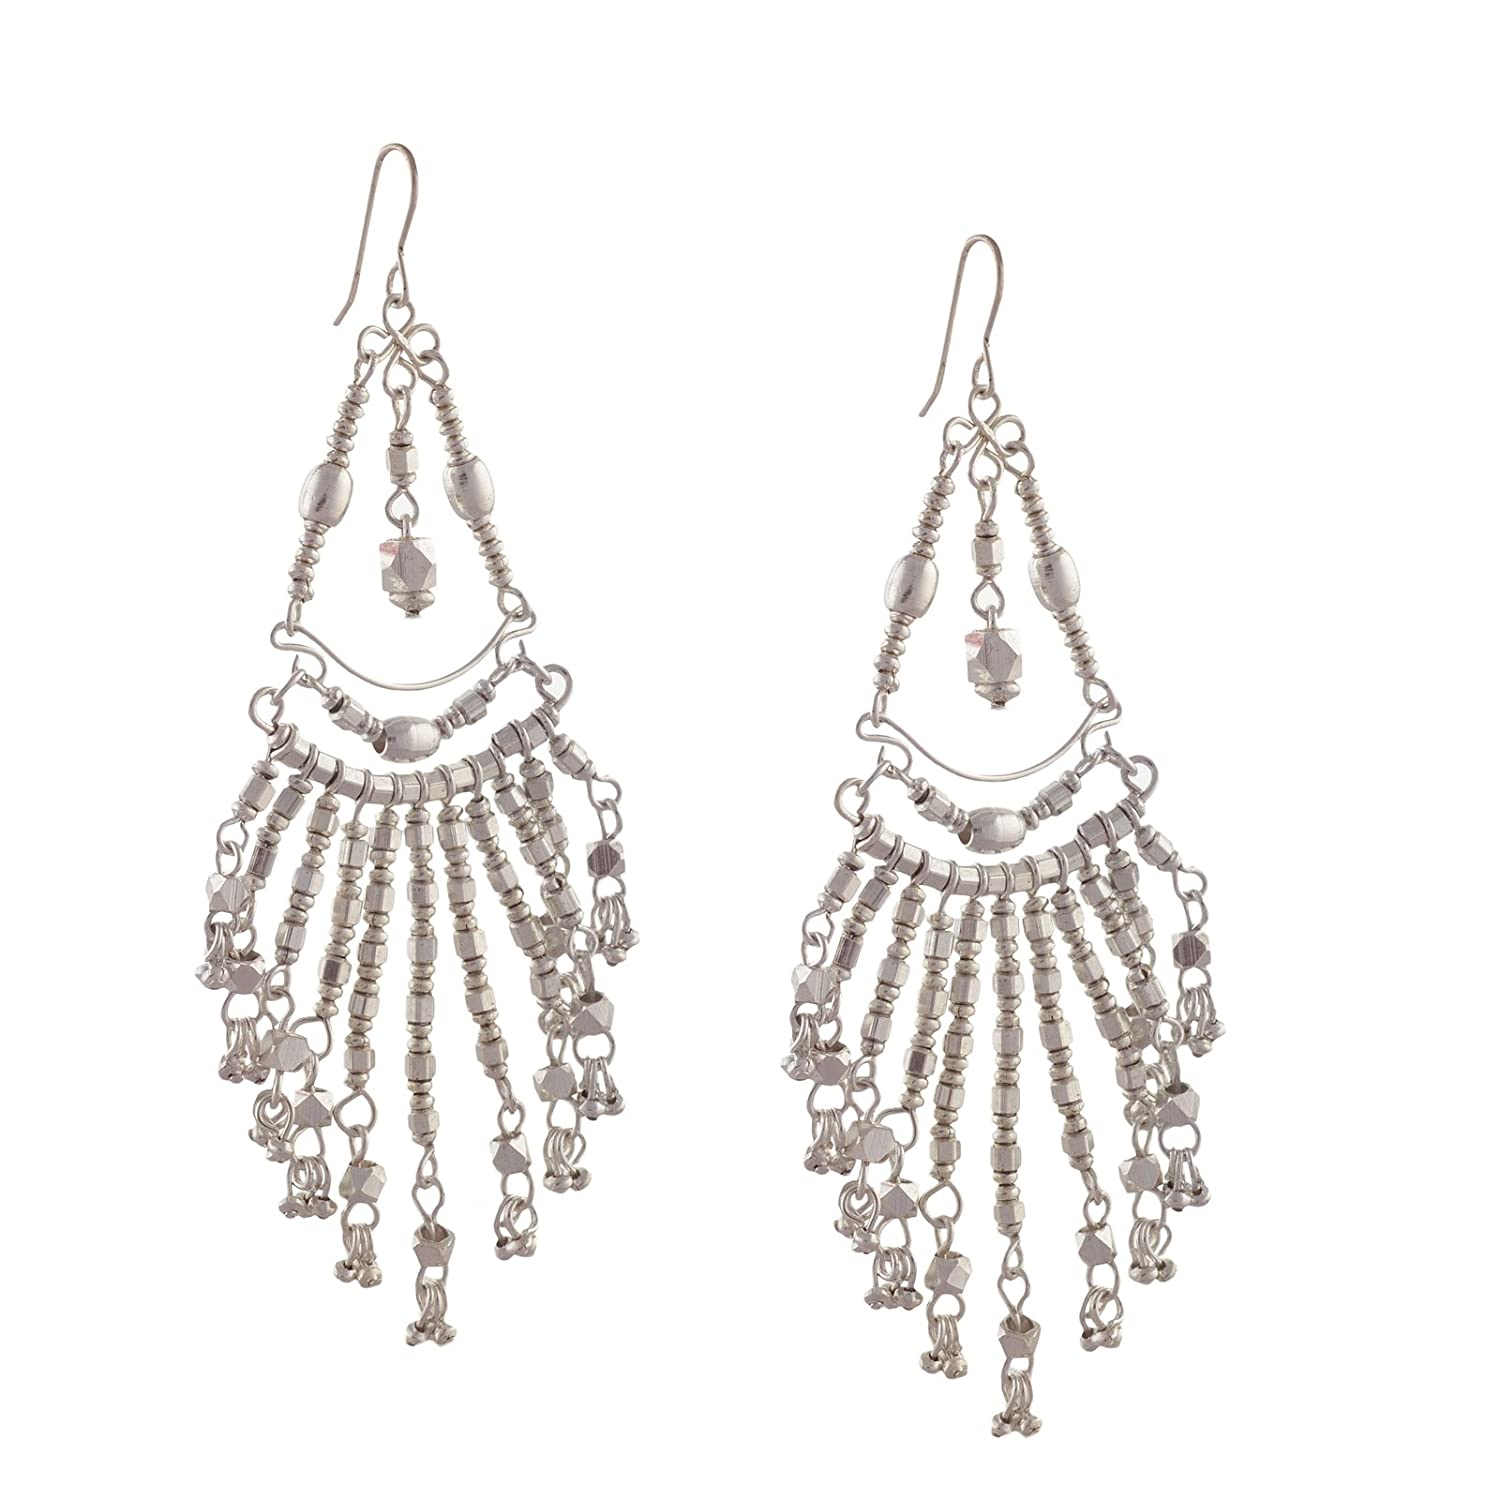 Ornamenta Fashion Jewelry Silver Tone Metallic Hook Dangler Tassel Earrings For Girls and Women